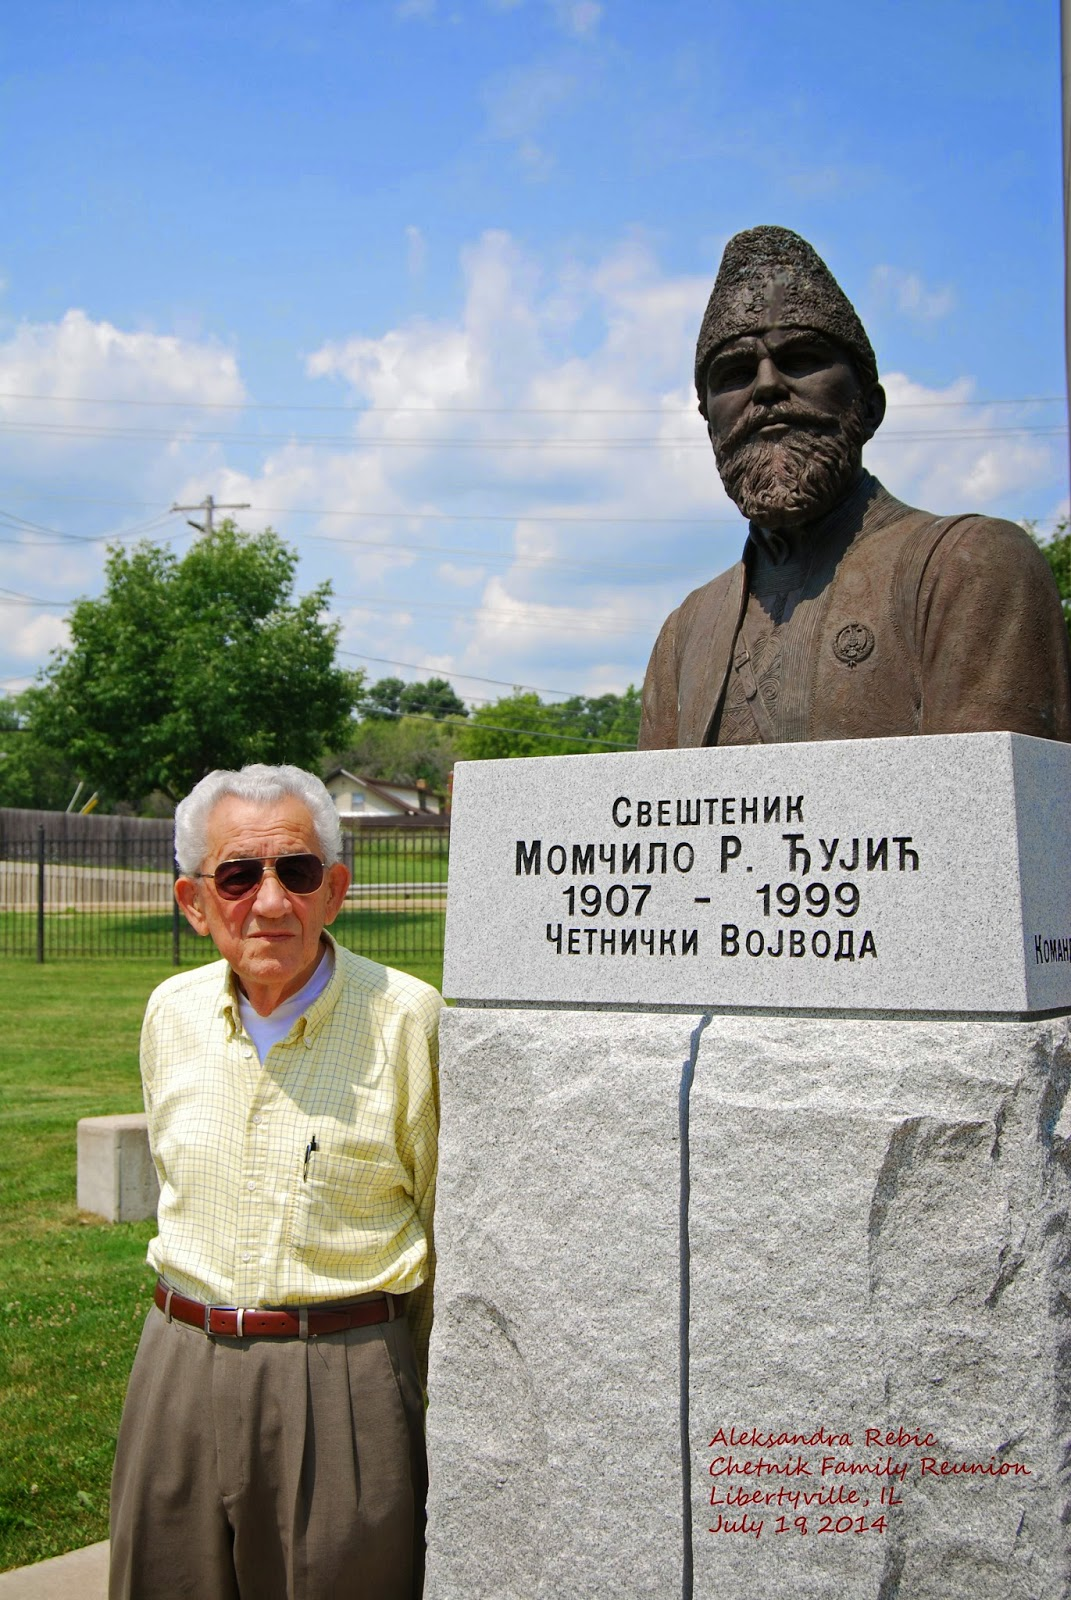 Rade Rebic with Voyvoda Djujich monument at St. Sava Monastery in Libertyville, IL Photo by Aleksandra Rebic July 19, 2014